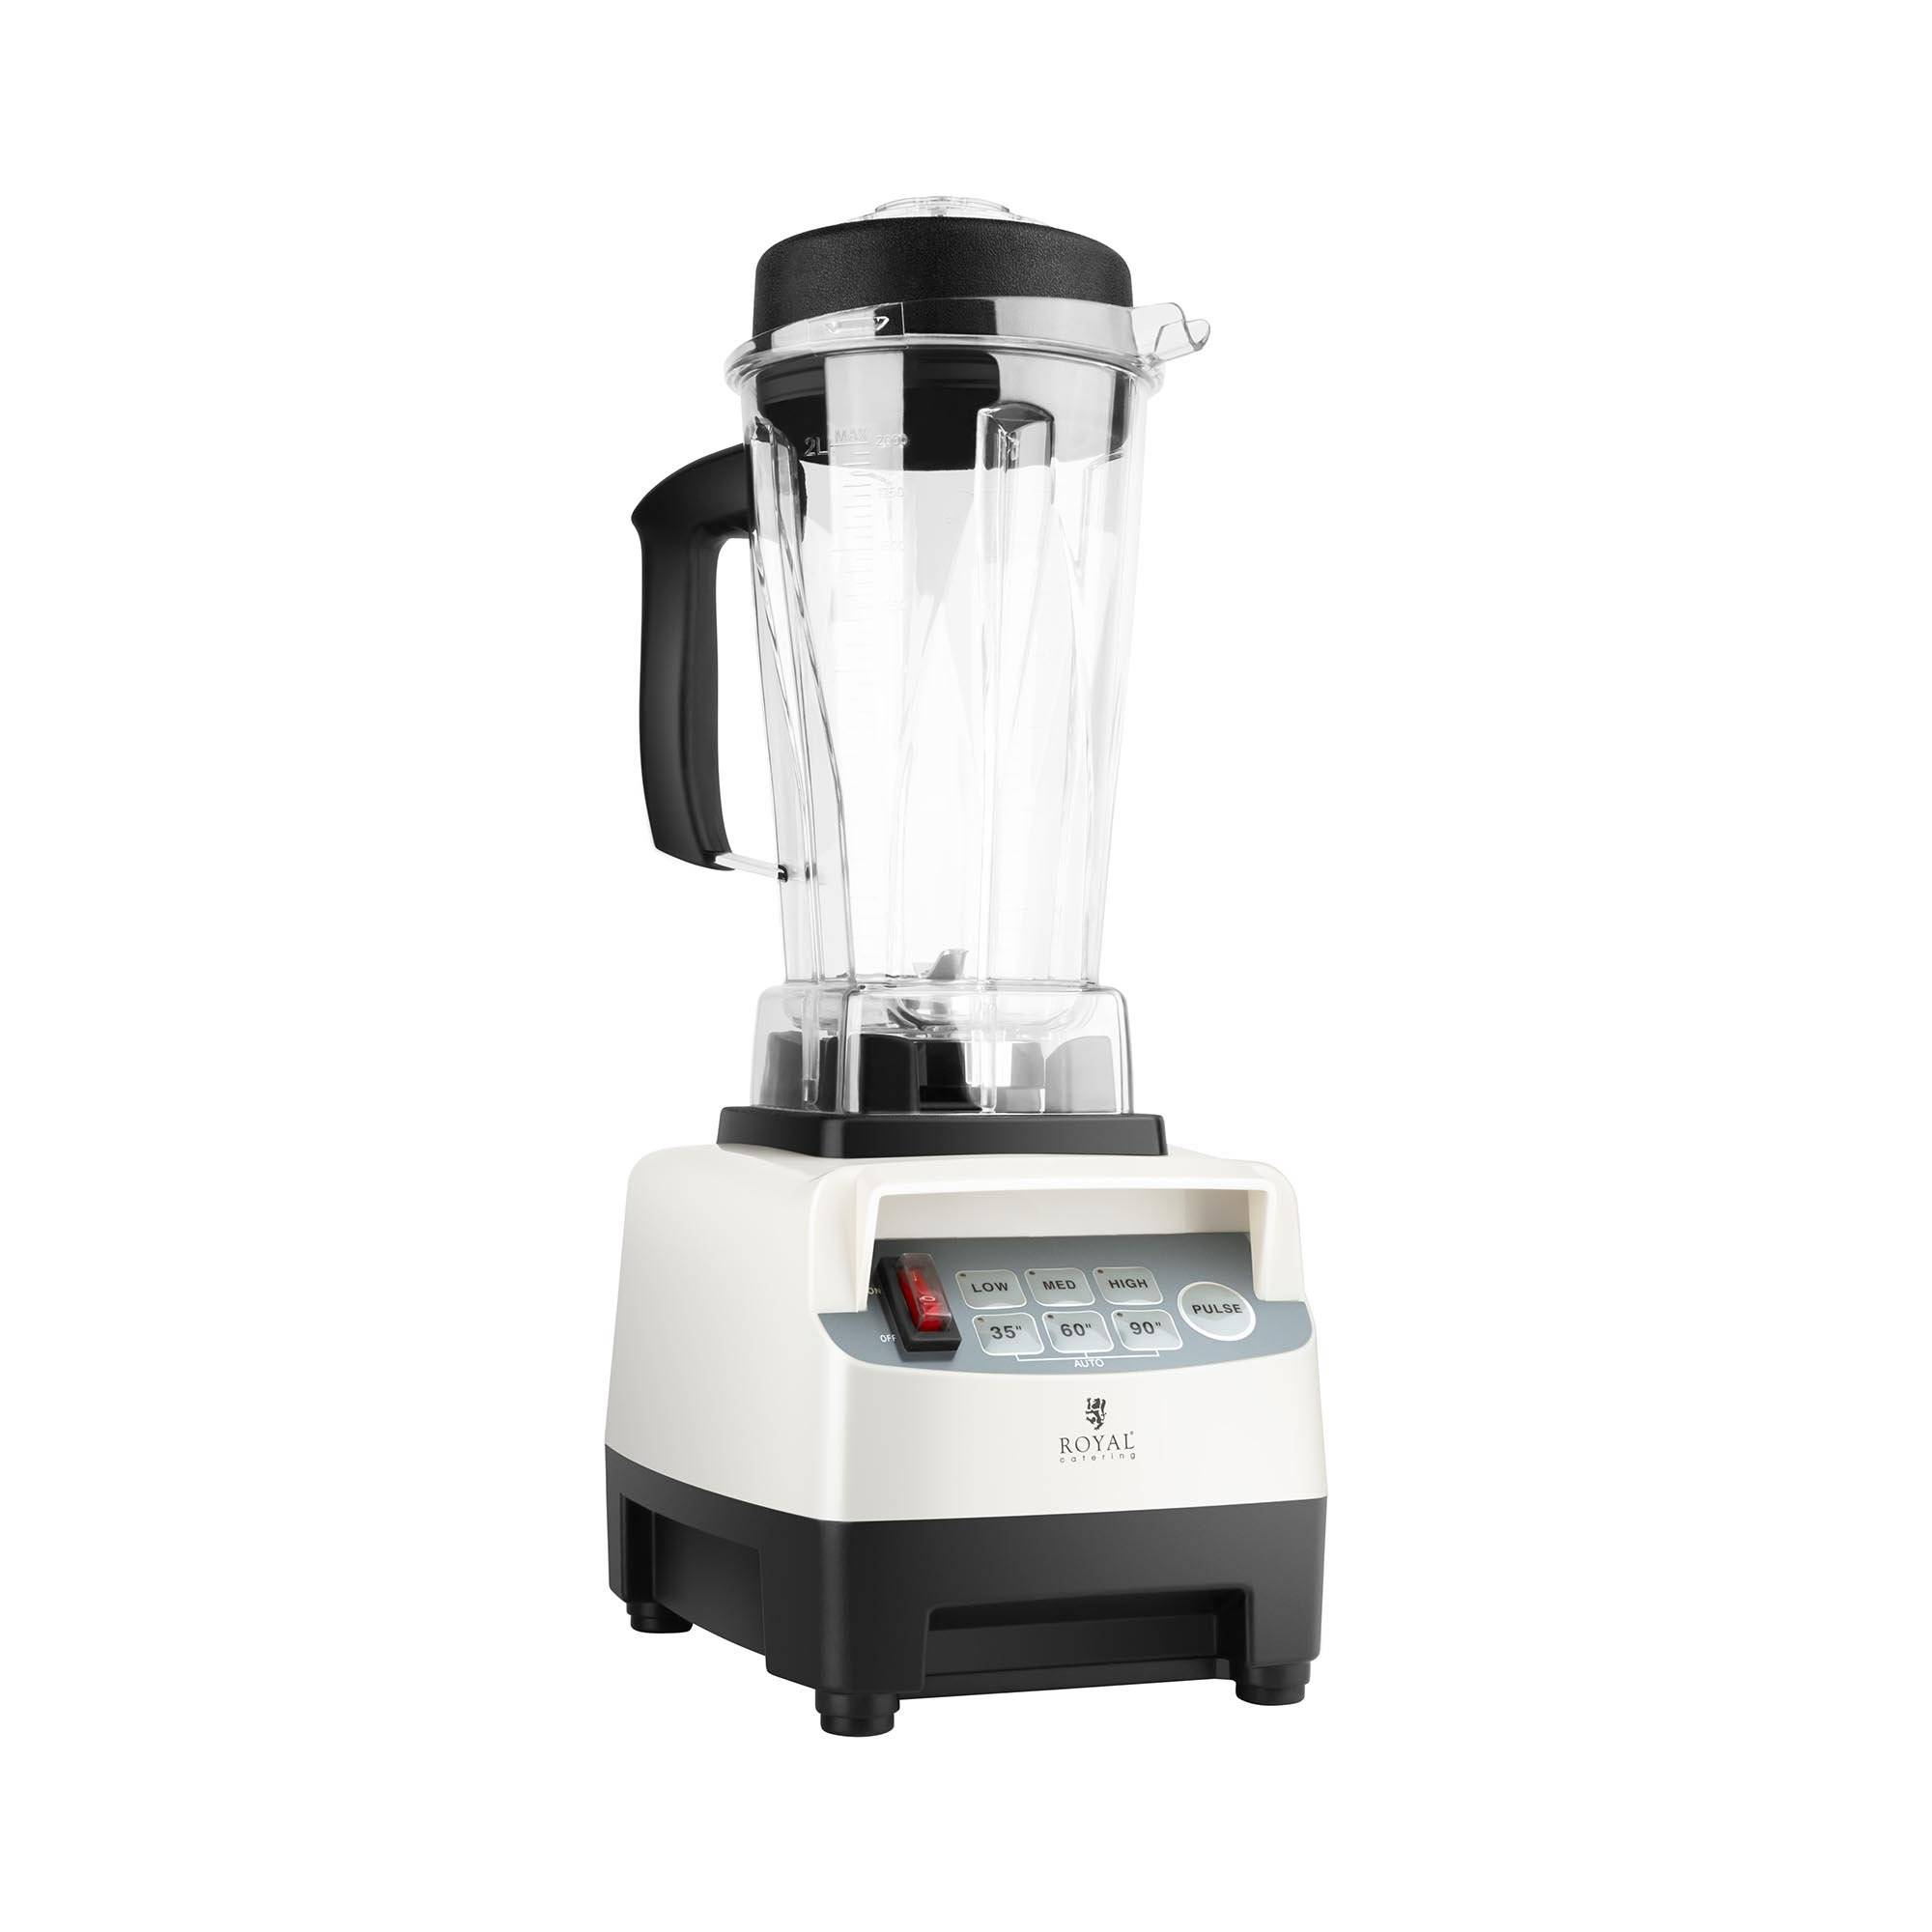 Royal Catering Commercial High-performance Blender Katana - 1,500 W - 38,000 rpm